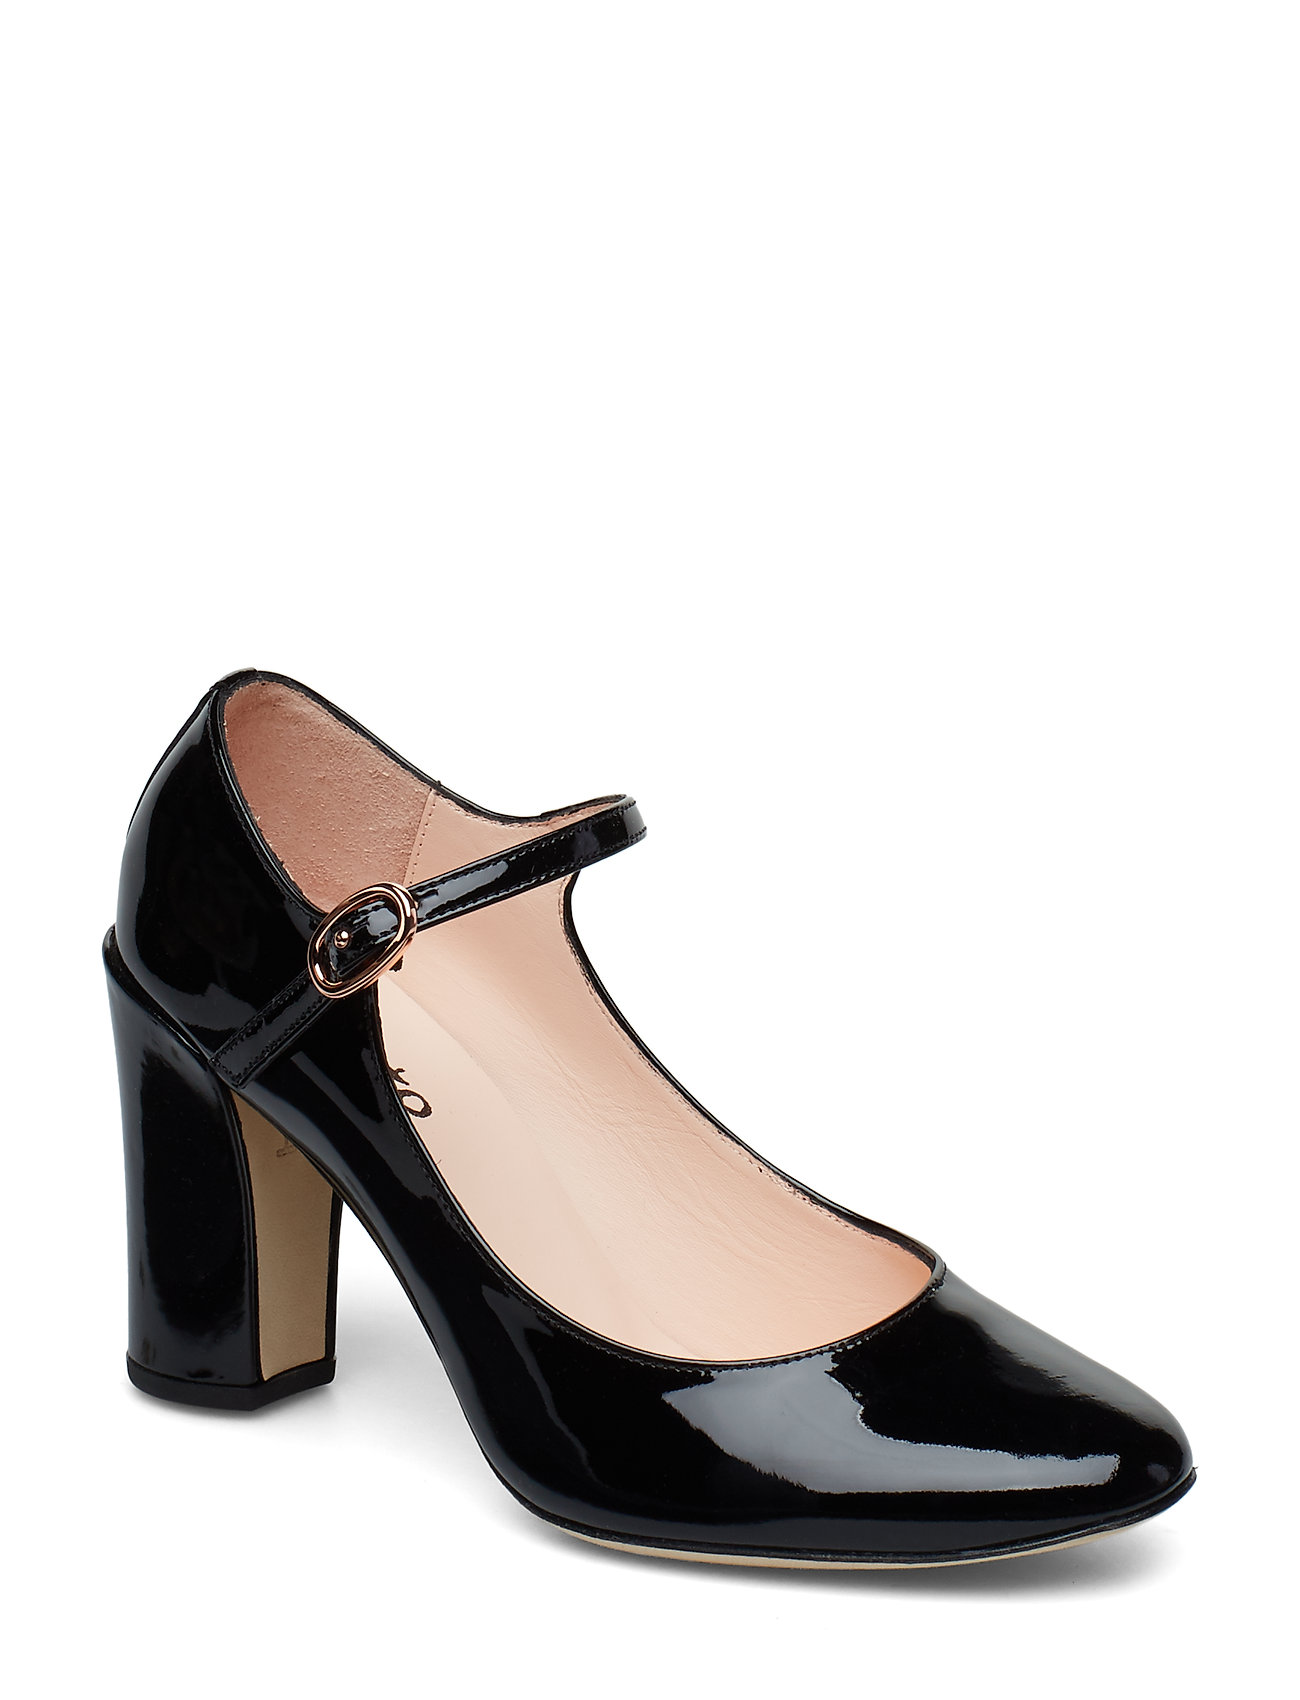 Repetto Paris ENDORA BAB8 AD - NOIR